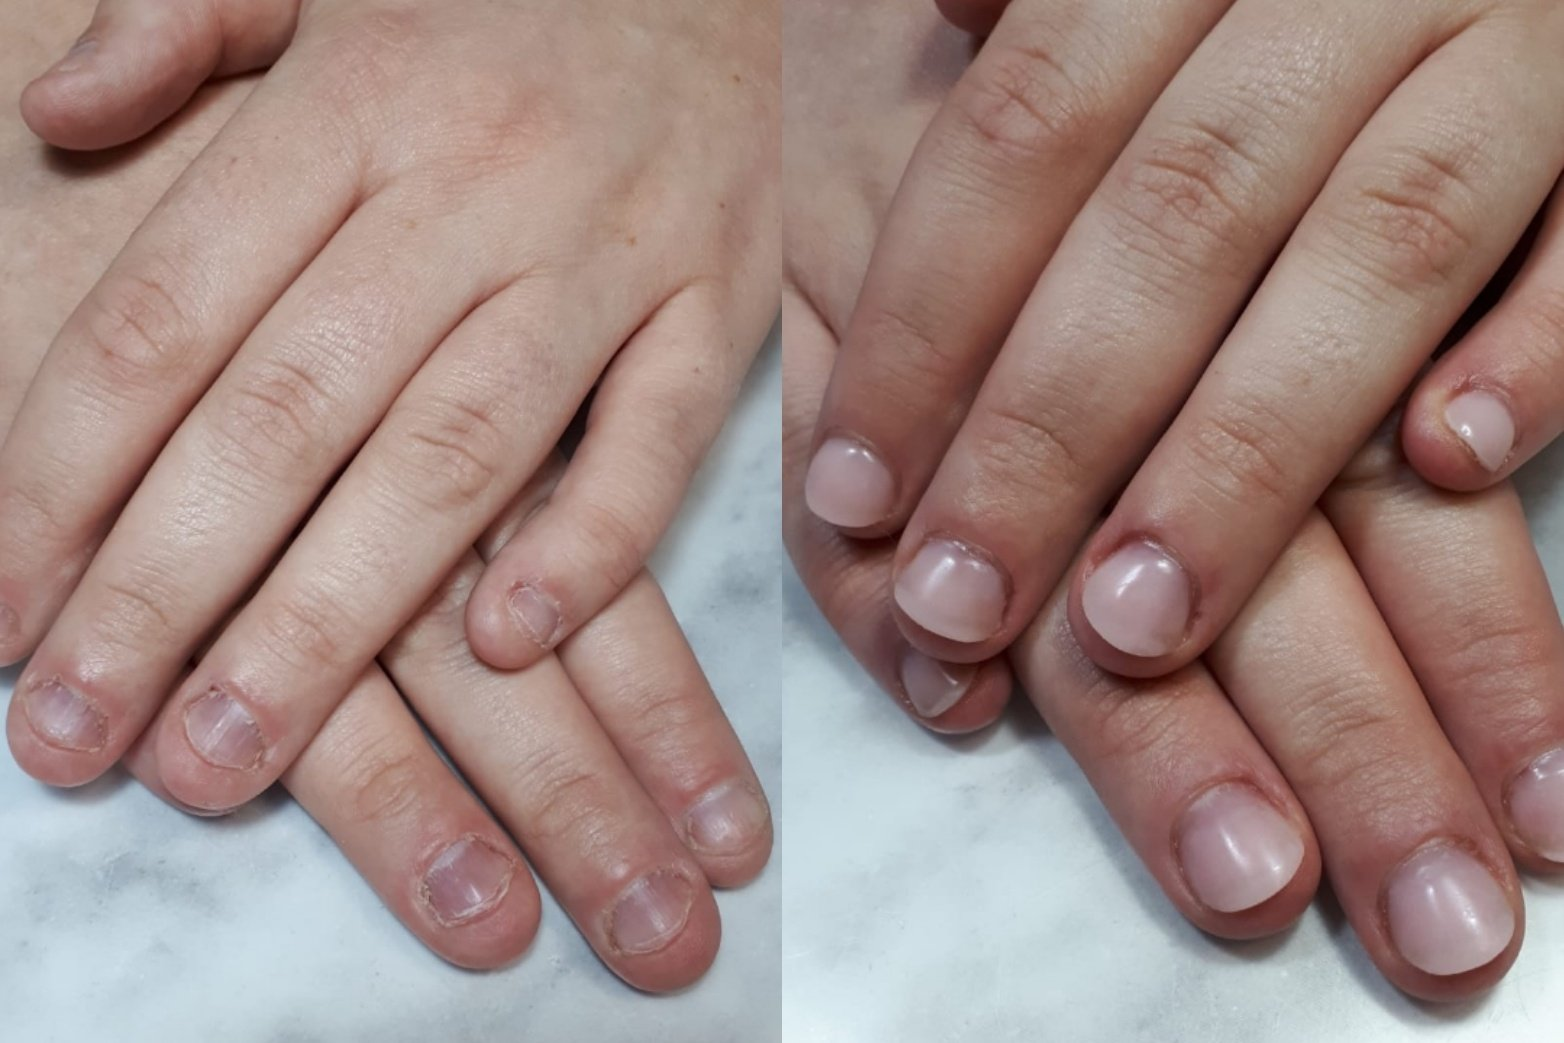 Quit biting nails package - better